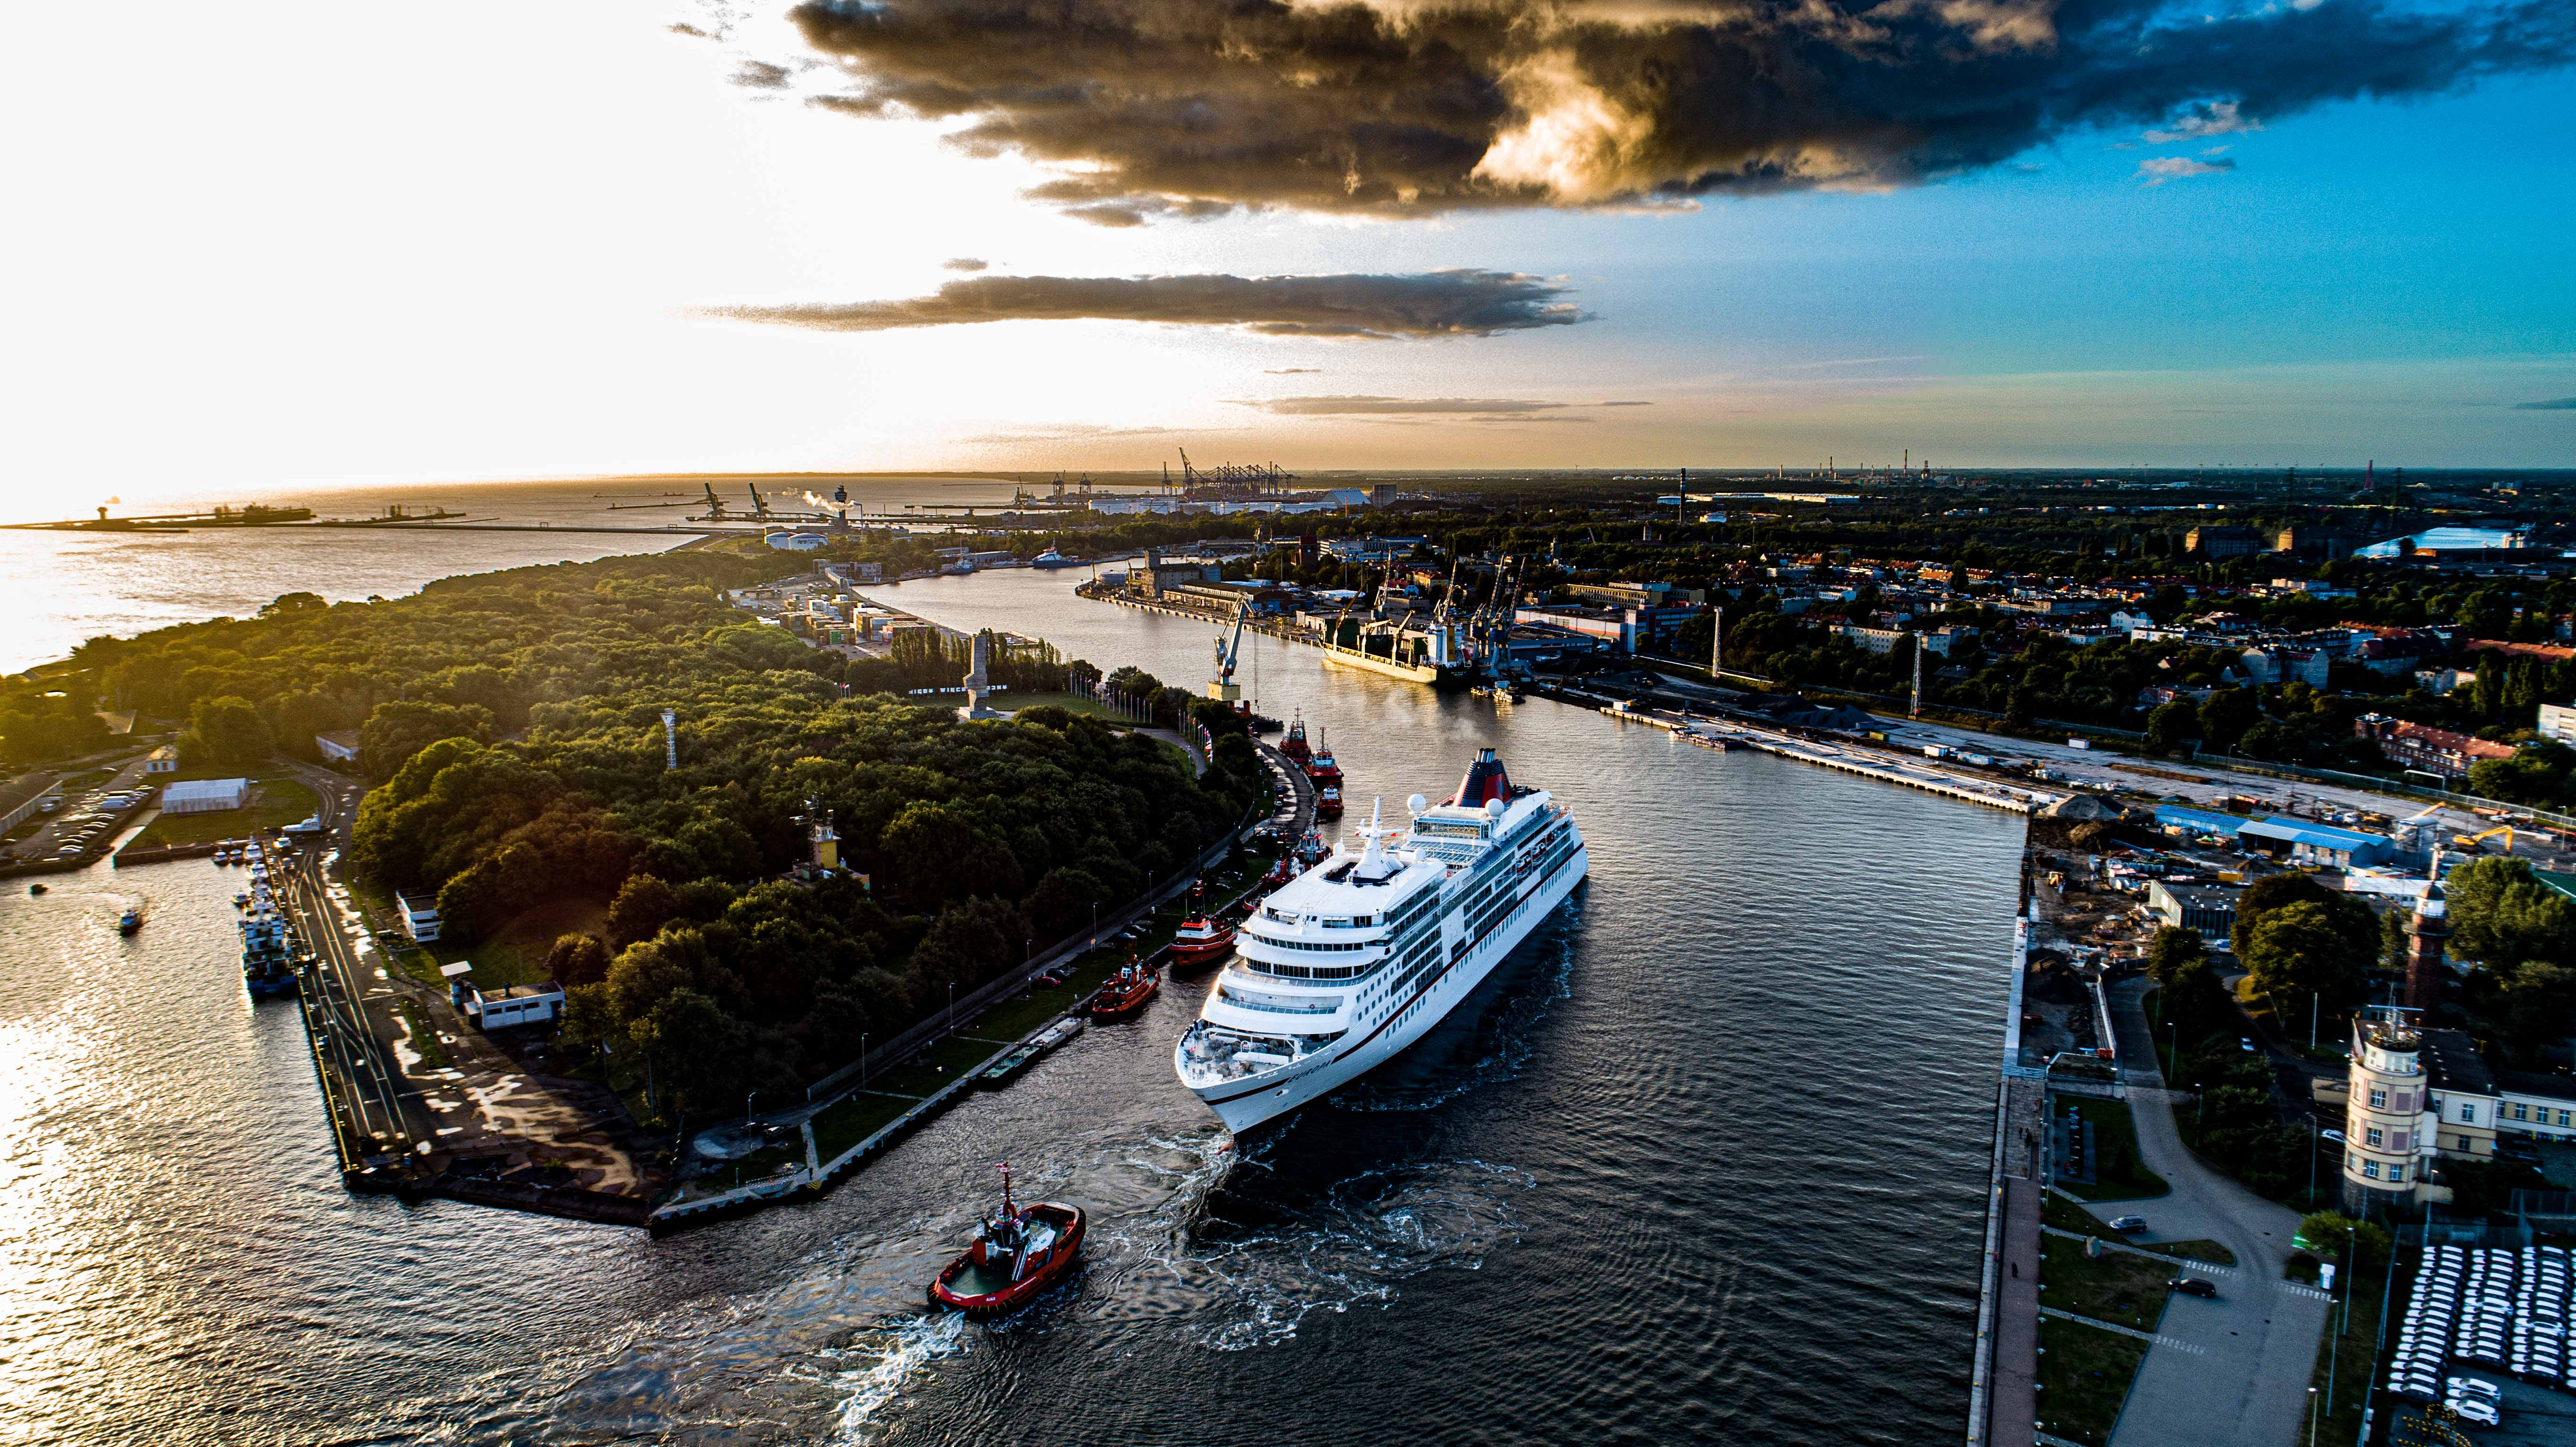 The first cruise ship of the season at the Port of Gdansk